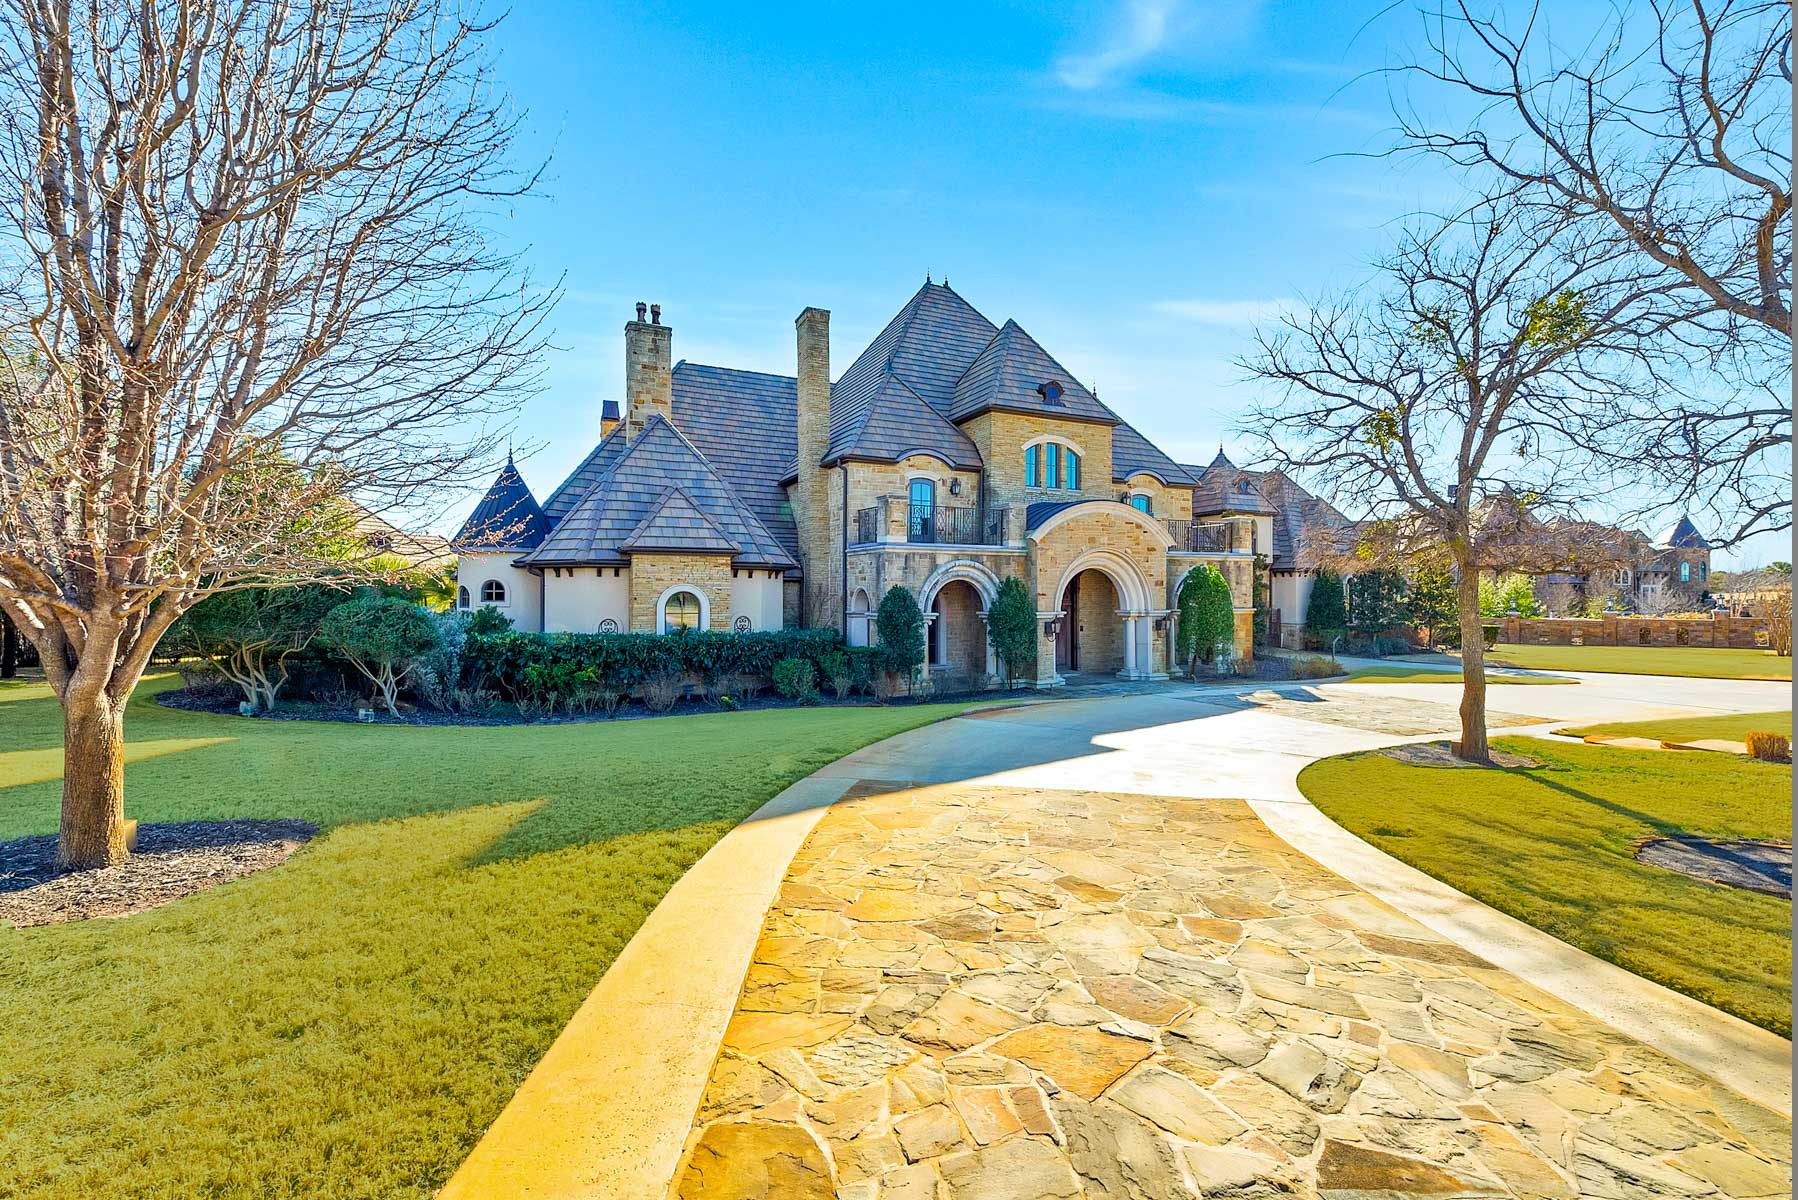 Casa Unifamiliar por un Venta en Montserrat Traditional 9517 Bella Terra Drive Fort Worth, Texas 76126 Estados Unidos